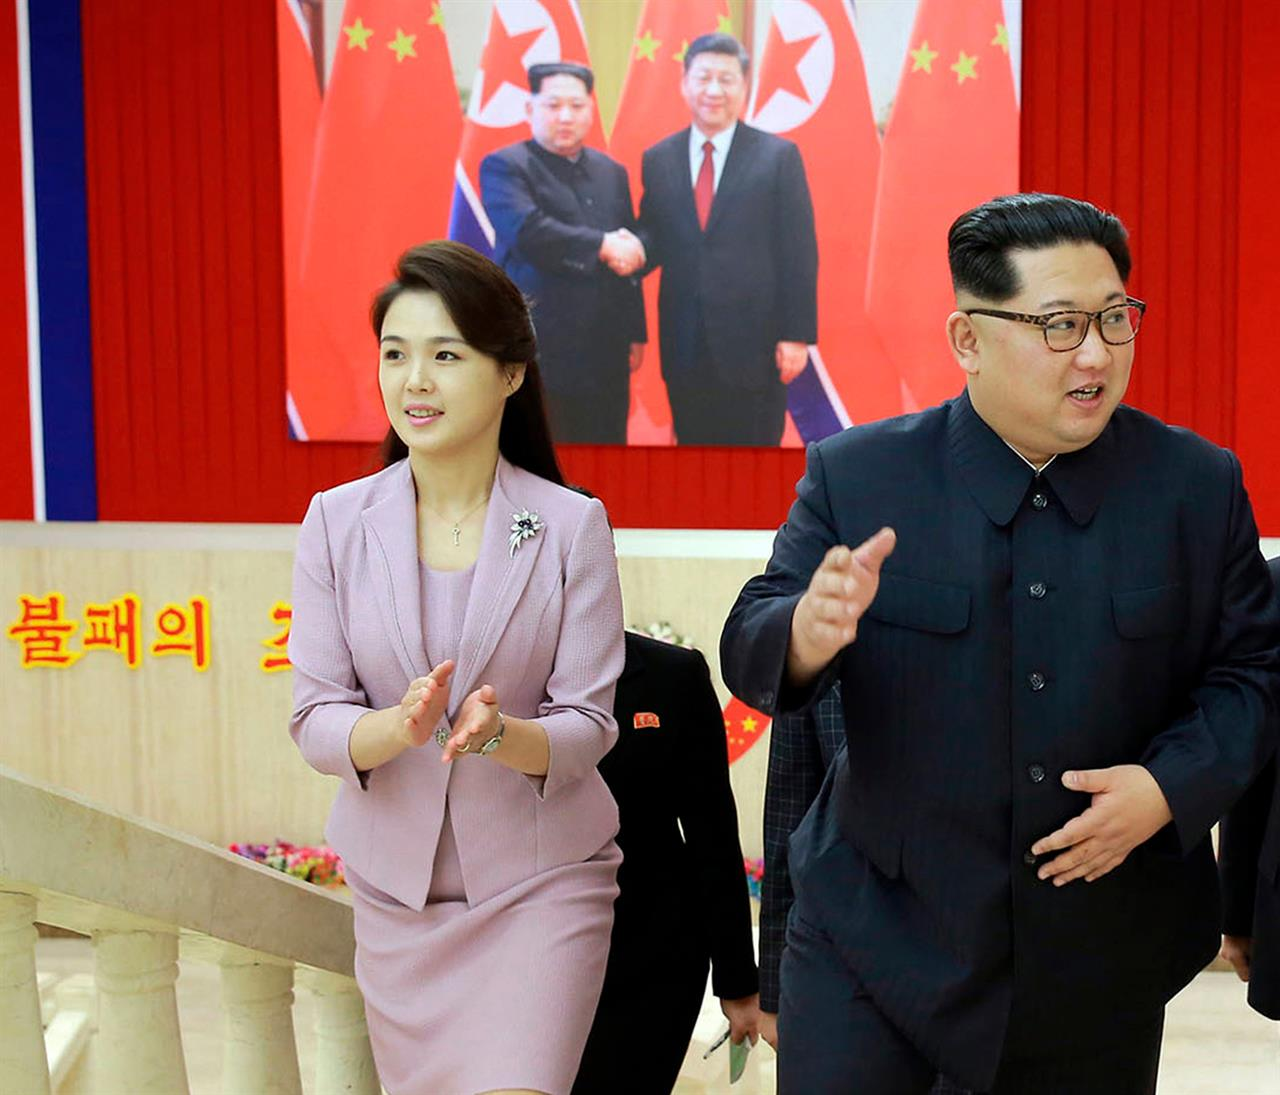 In this April 14, 2018, file photo provided by the North Korean government, Ri Sol Ju claps while walking with her husband, North Korean leader Kim Jong Un, right, in Pyongyang, North Korea.